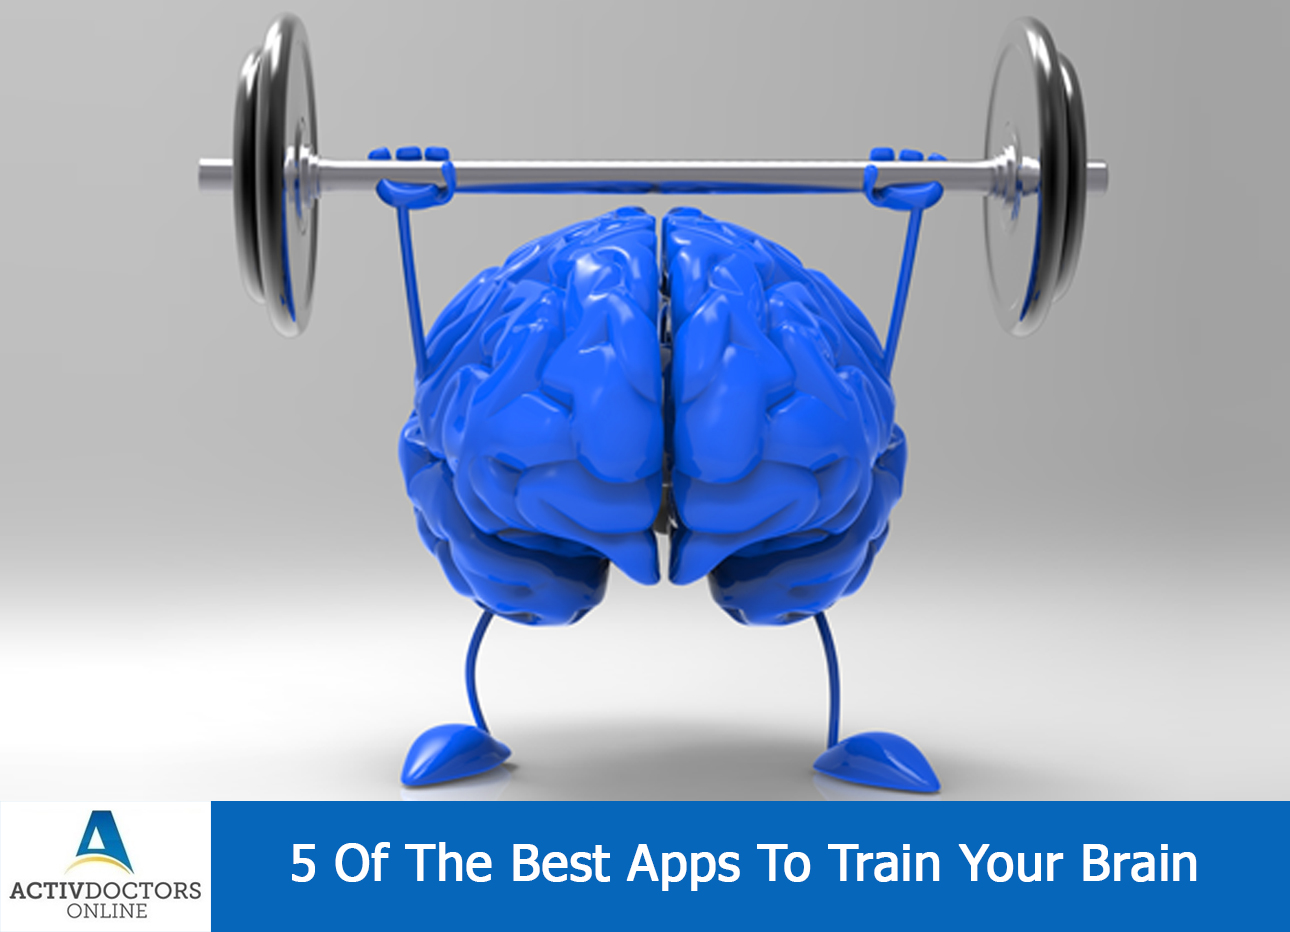 5 Of The Best Apps To Train Your Brain